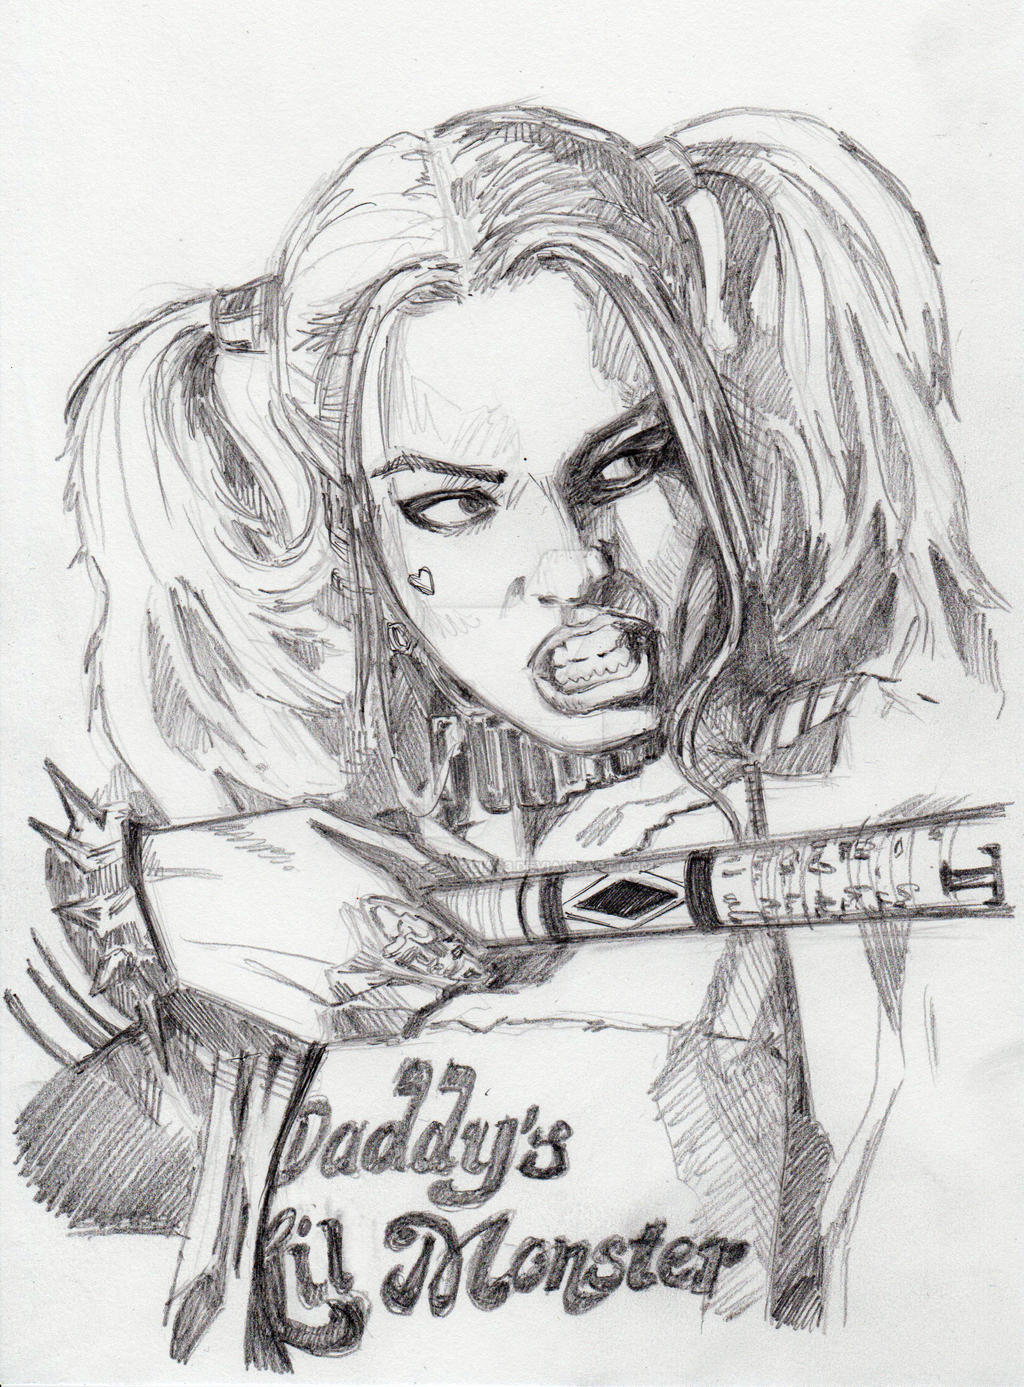 Harley Quinn Pencils (Suicide Squad) By JopetGarcia63 On DeviantArt